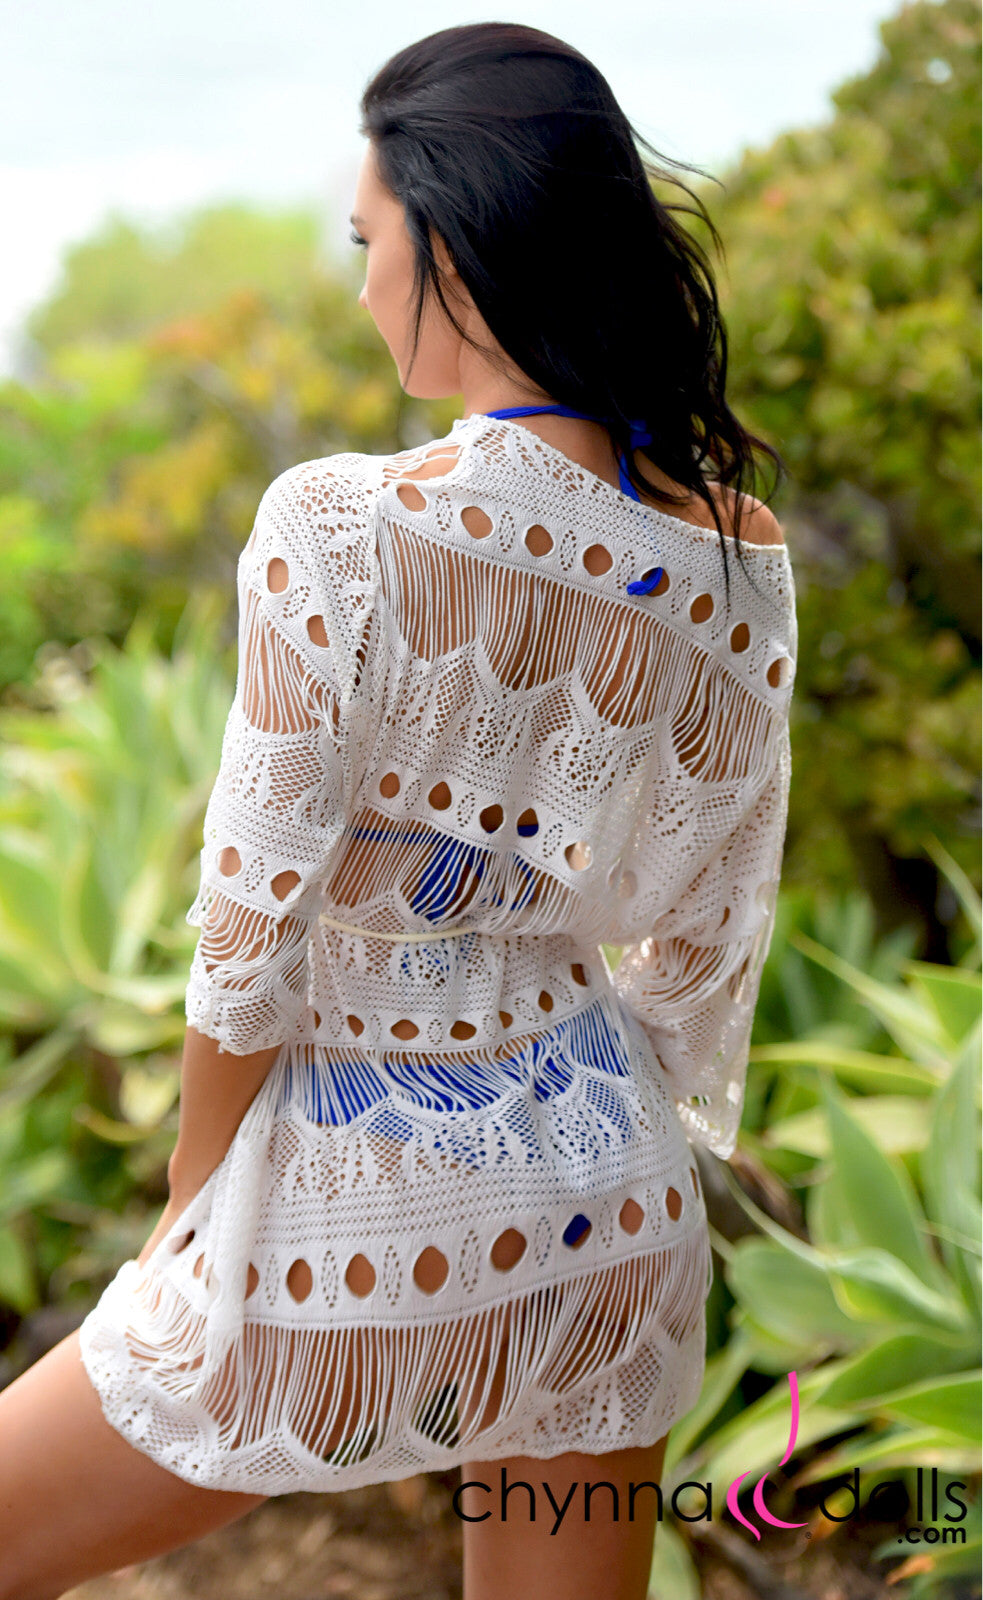 Aleah: Oversizes Net Coverup with Drawstring Ties in Off White - Chynna Dolls Swimwear